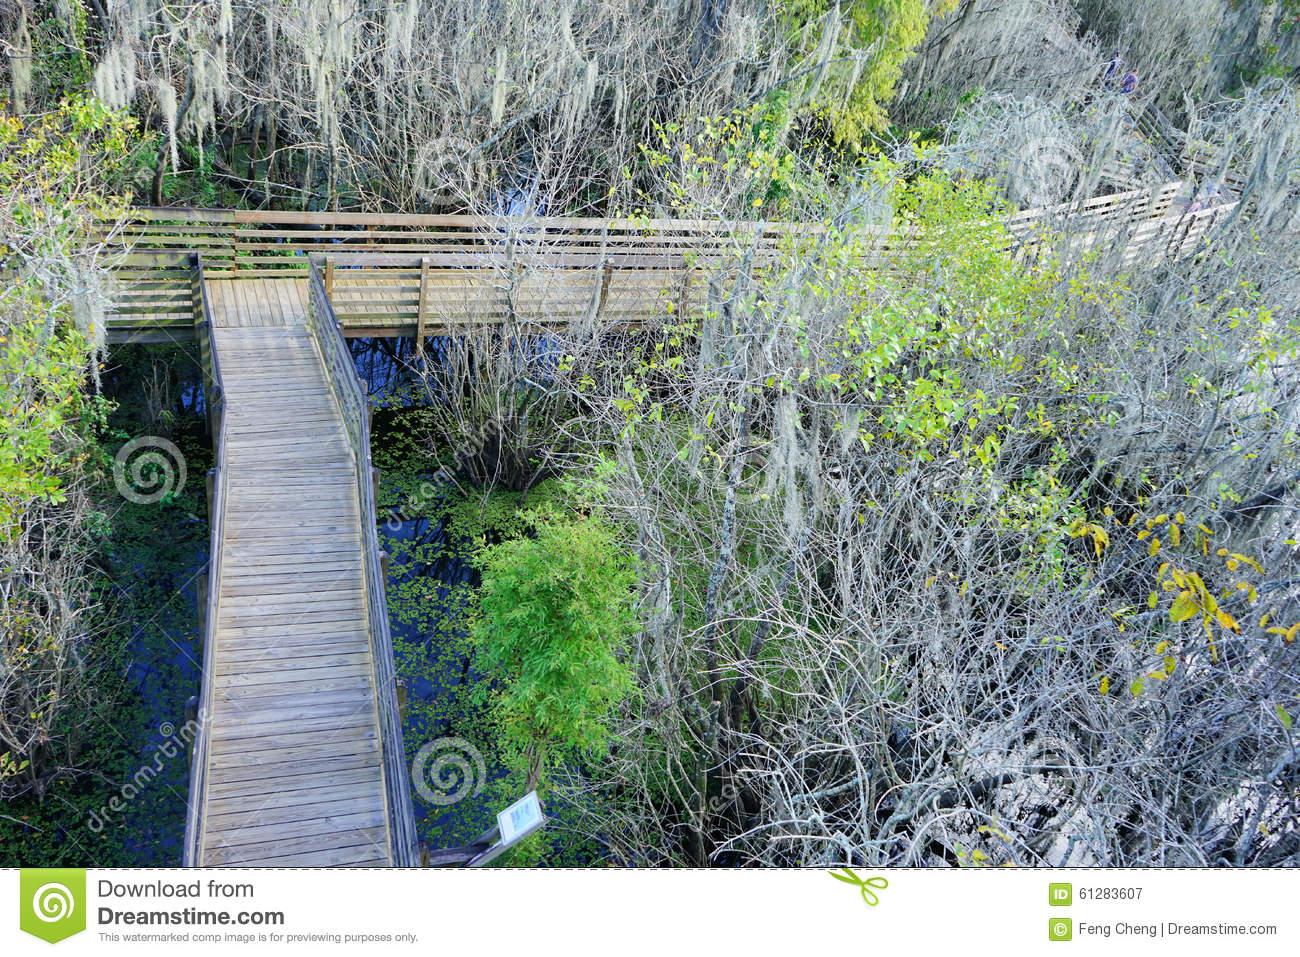 Aerial view of Lettuce Lake Park,